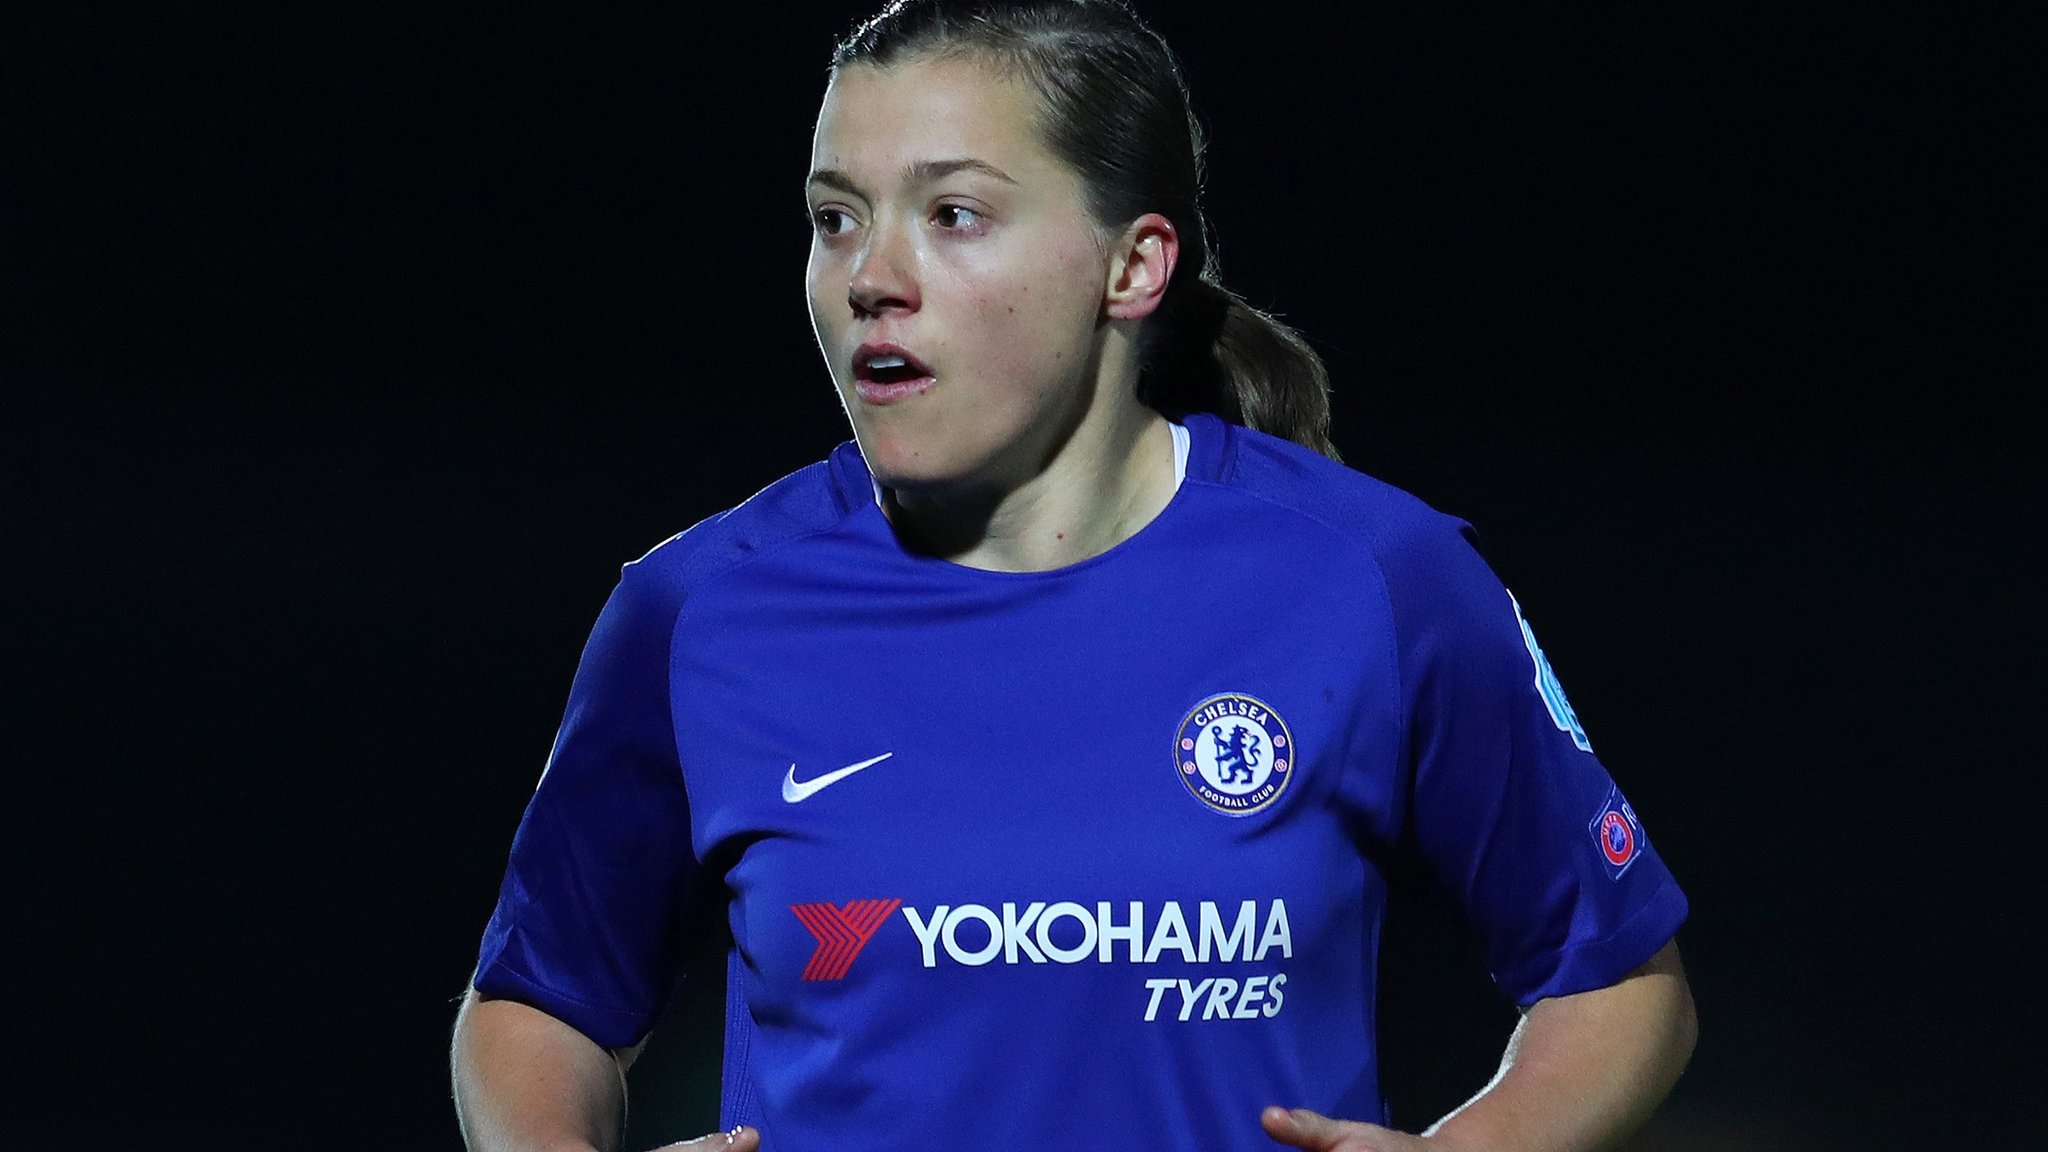 Chelsea Ladies striker Kirby wins inaugural footballer of the year award